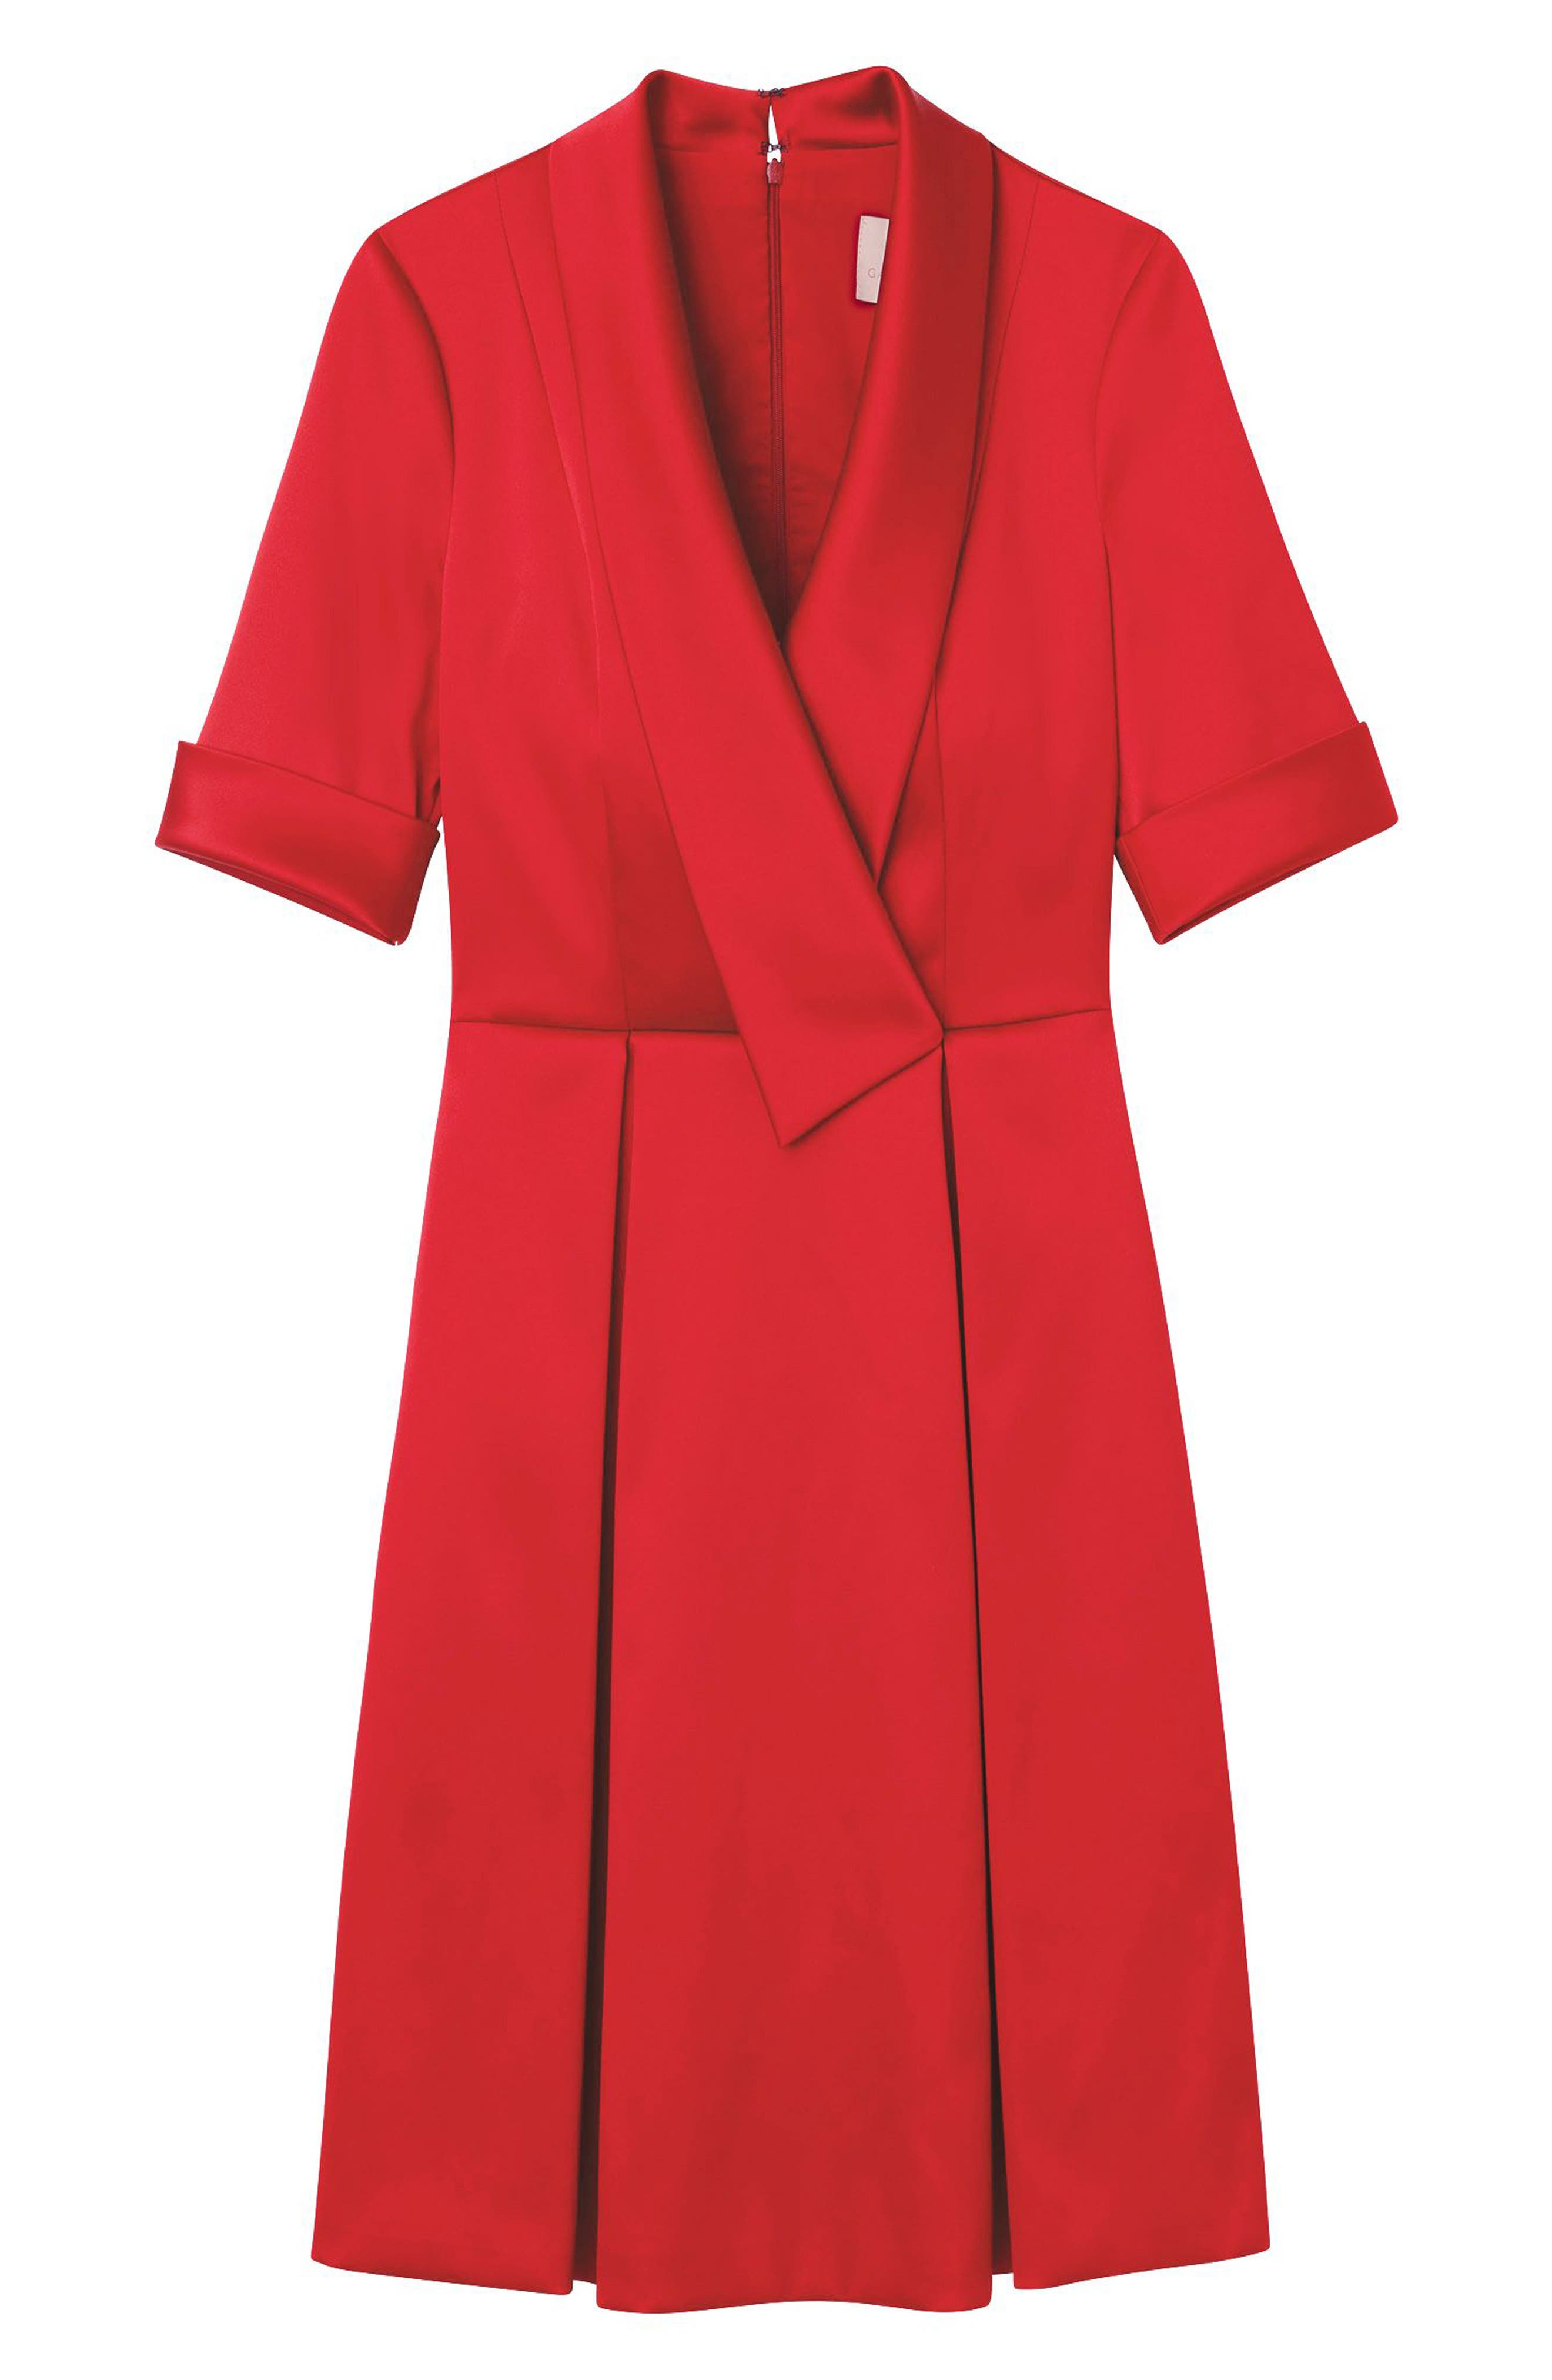 GAL MEETS GLAM COLLECTION,                             Ruby Royal Satin Asymmetrical Collar Dress,                             Alternate thumbnail 7, color,                             RUBY